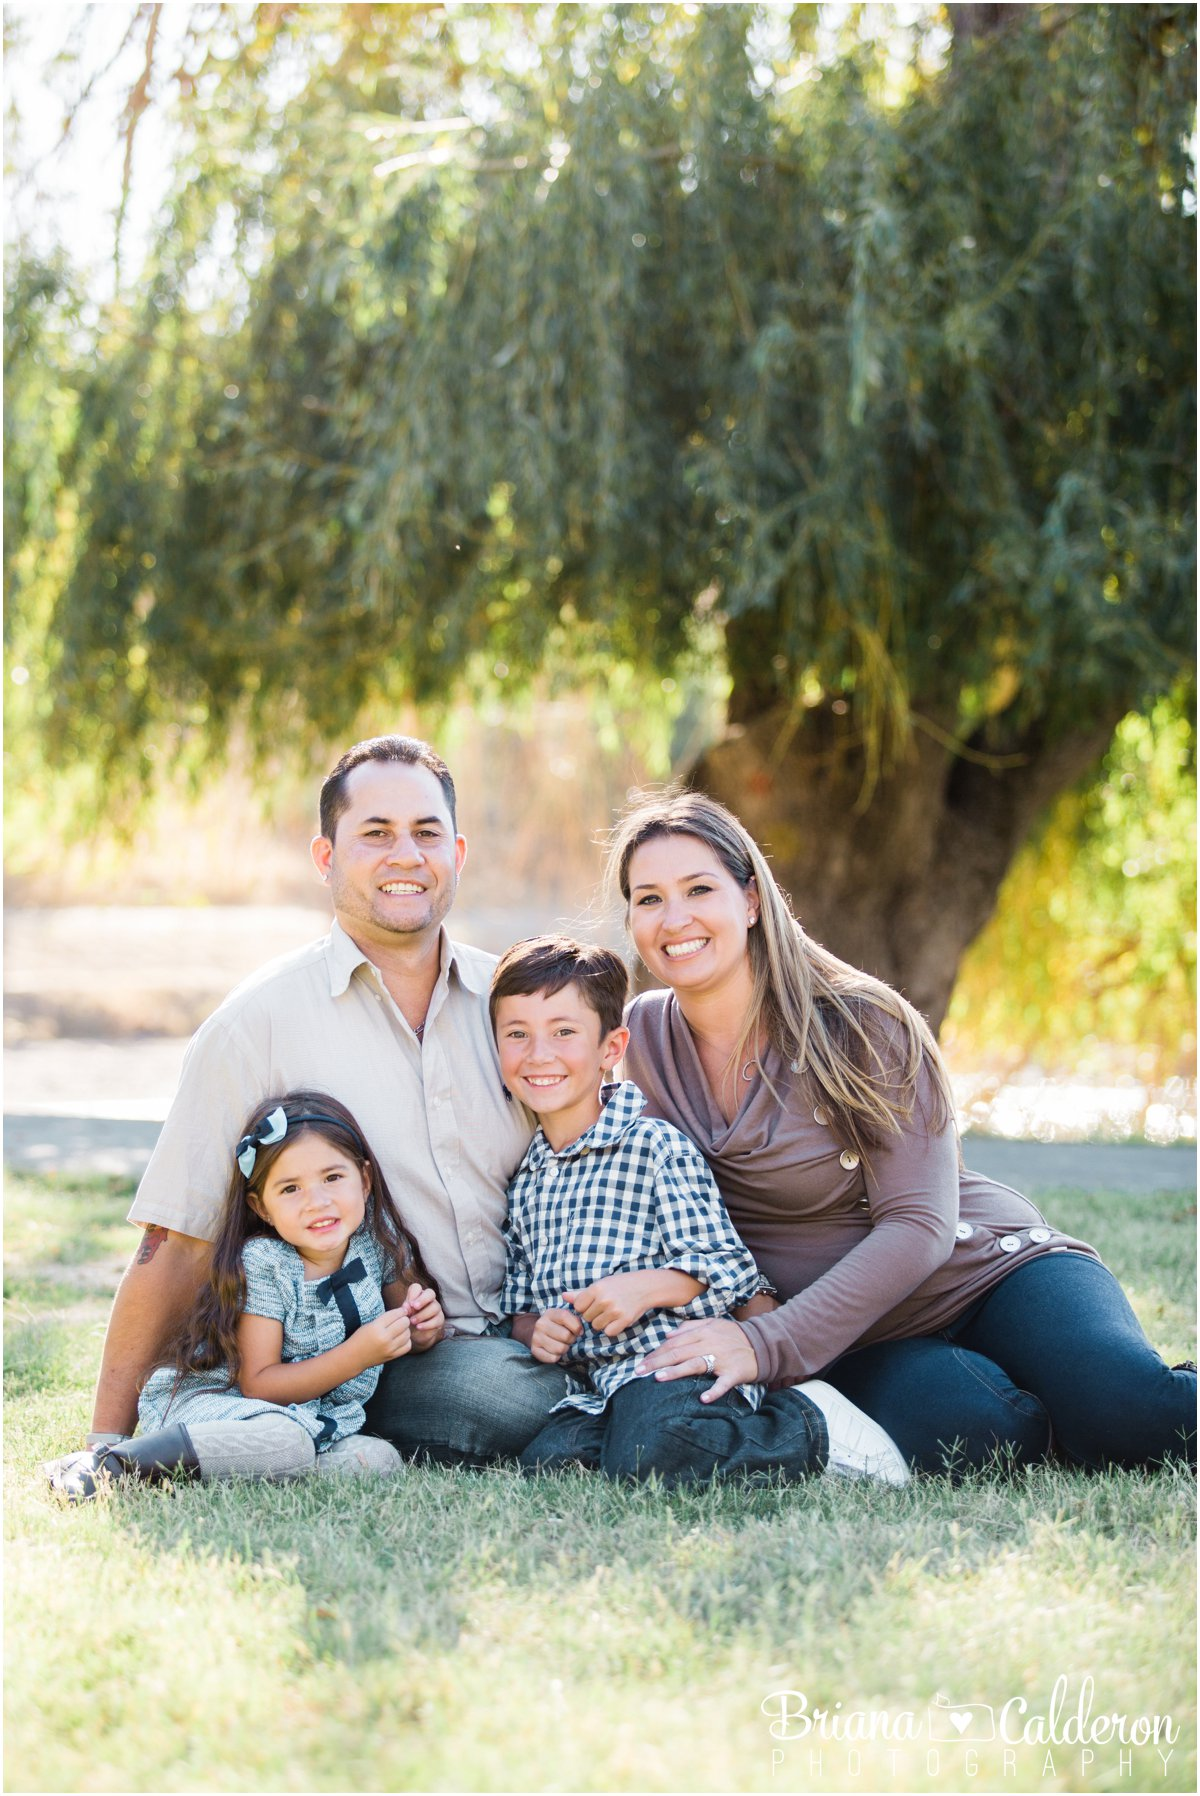 Fall family mini portrait session at Spring Valley Pond in Milpitas, California. Photos by Briana Calderon Photography based in the San Francisco Bay Area.